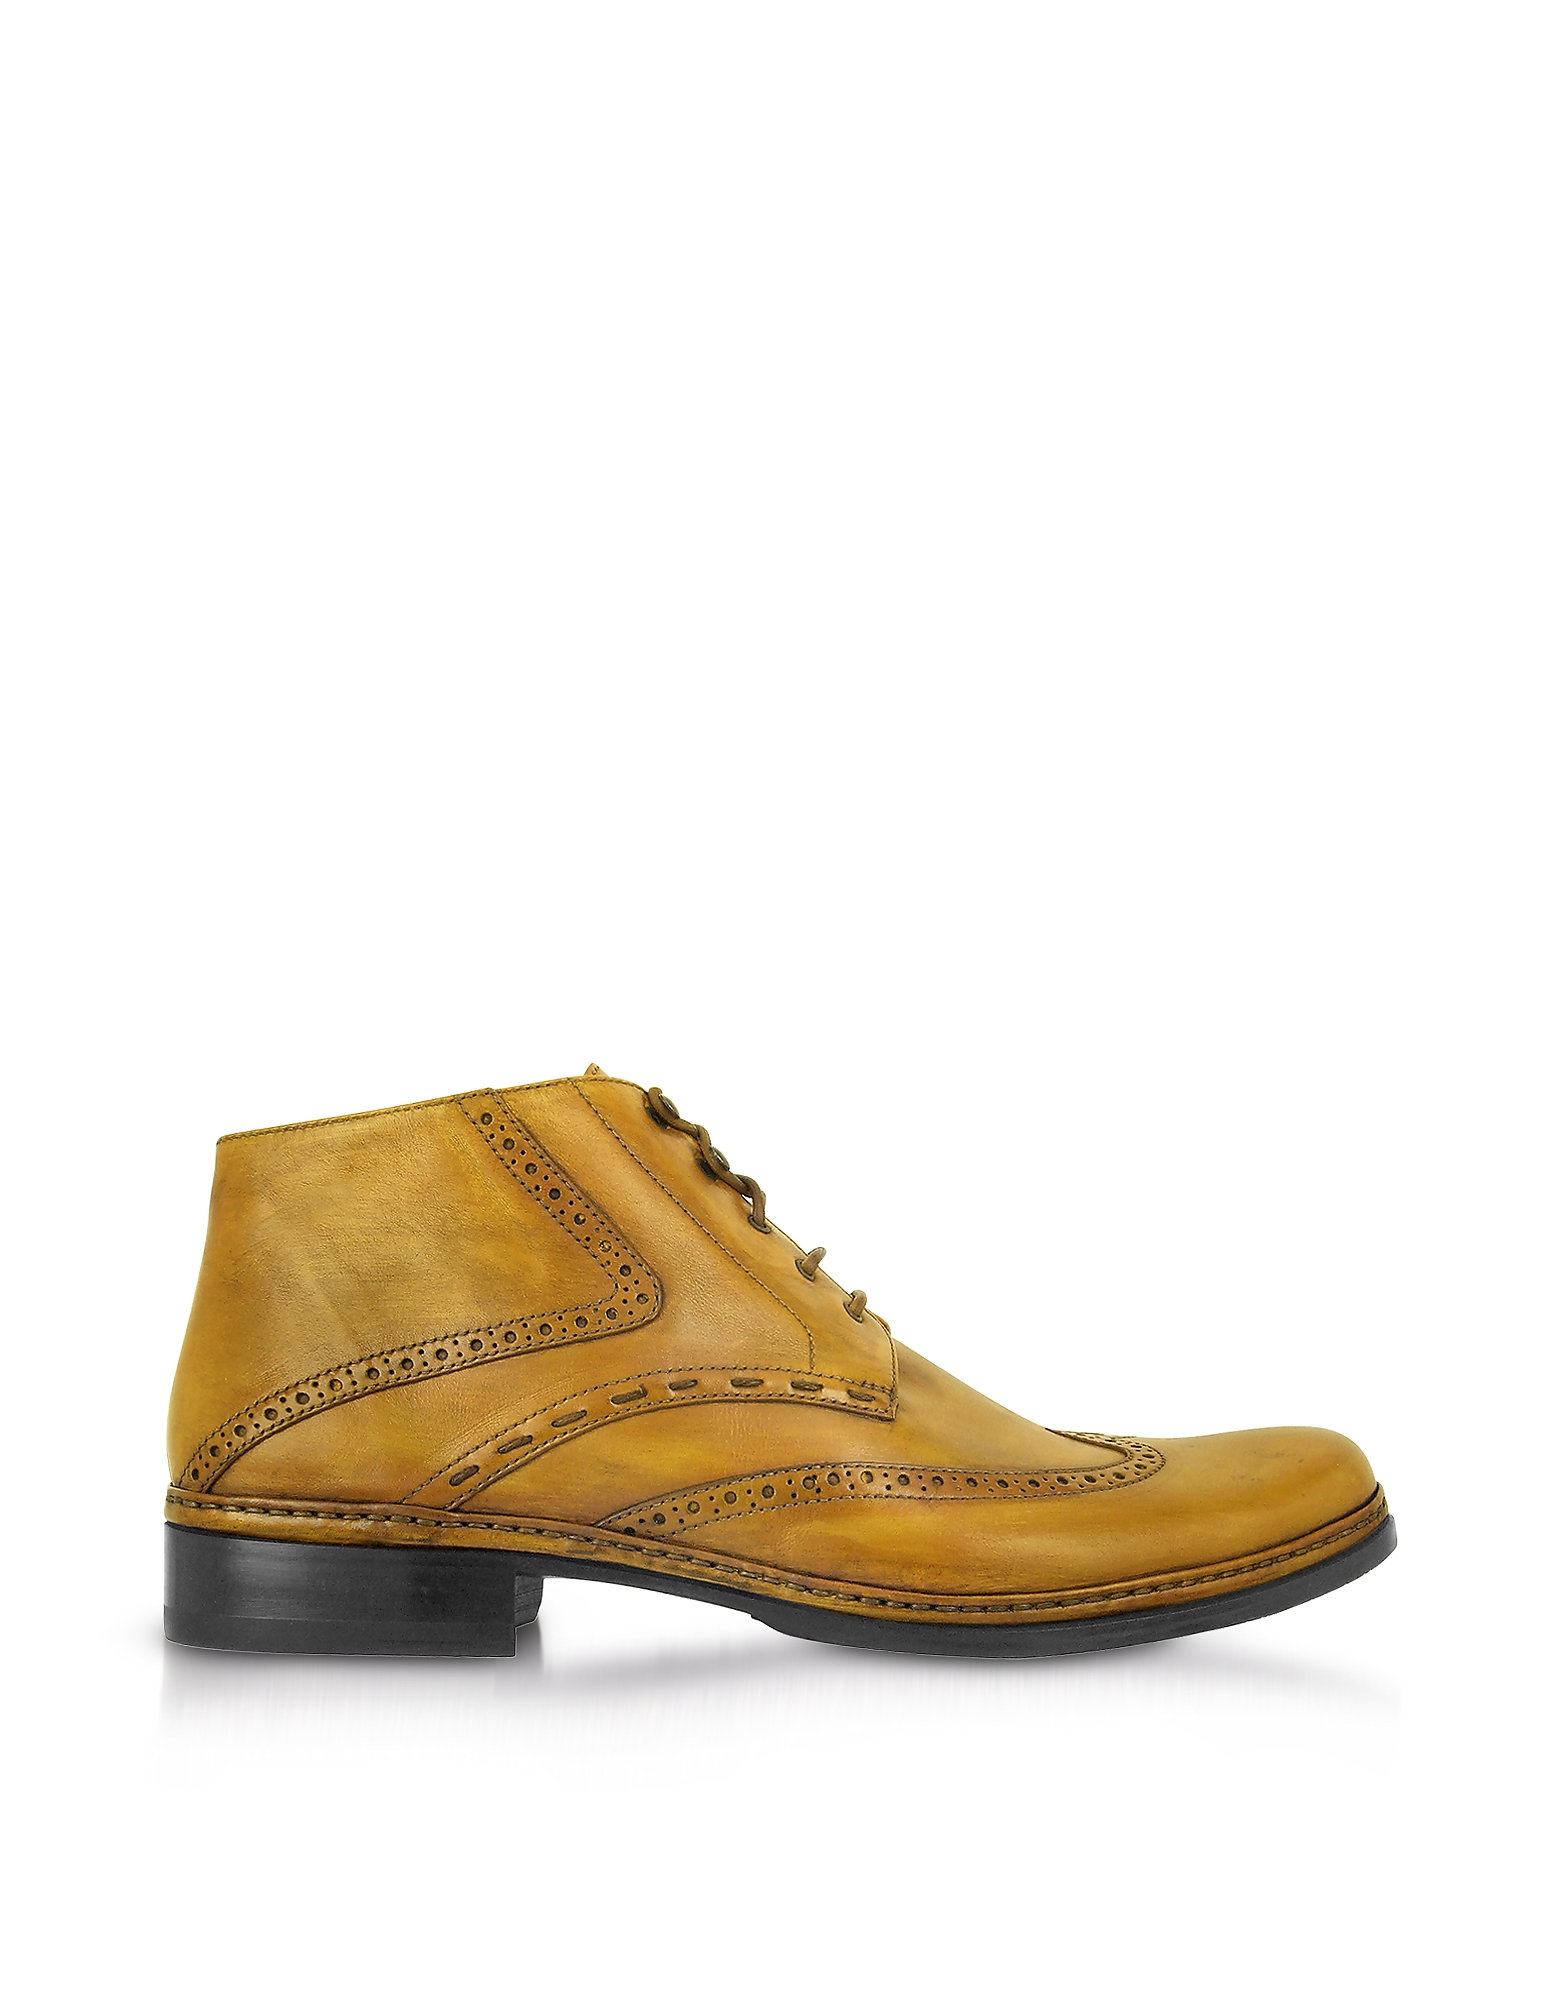 Pakerson Designer Shoes, Yellow Handmade Italian Leather Wingtip Ankle Boots